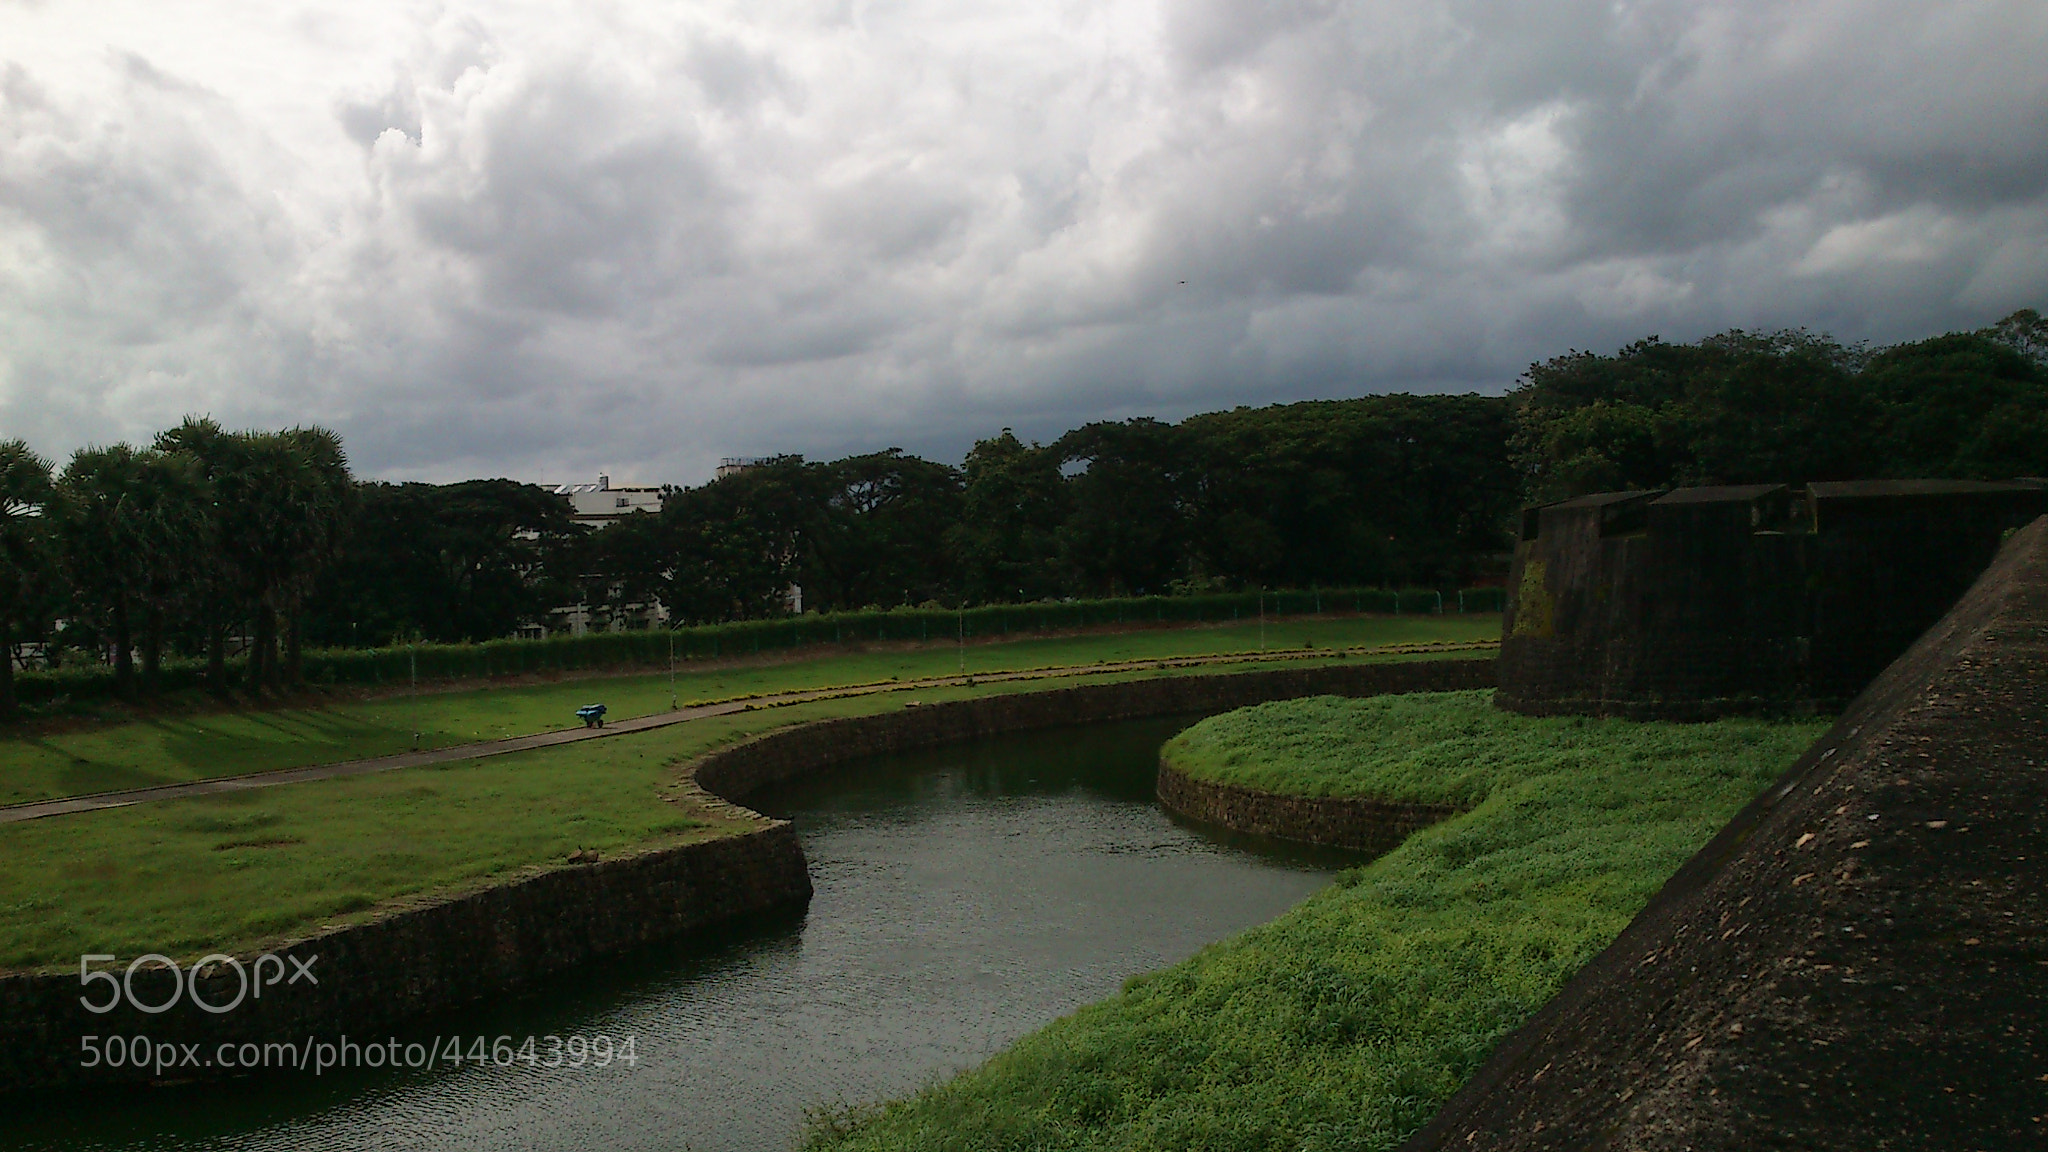 Photograph Palakkad Tipu's Fort by Abdul Hakkim on 500px